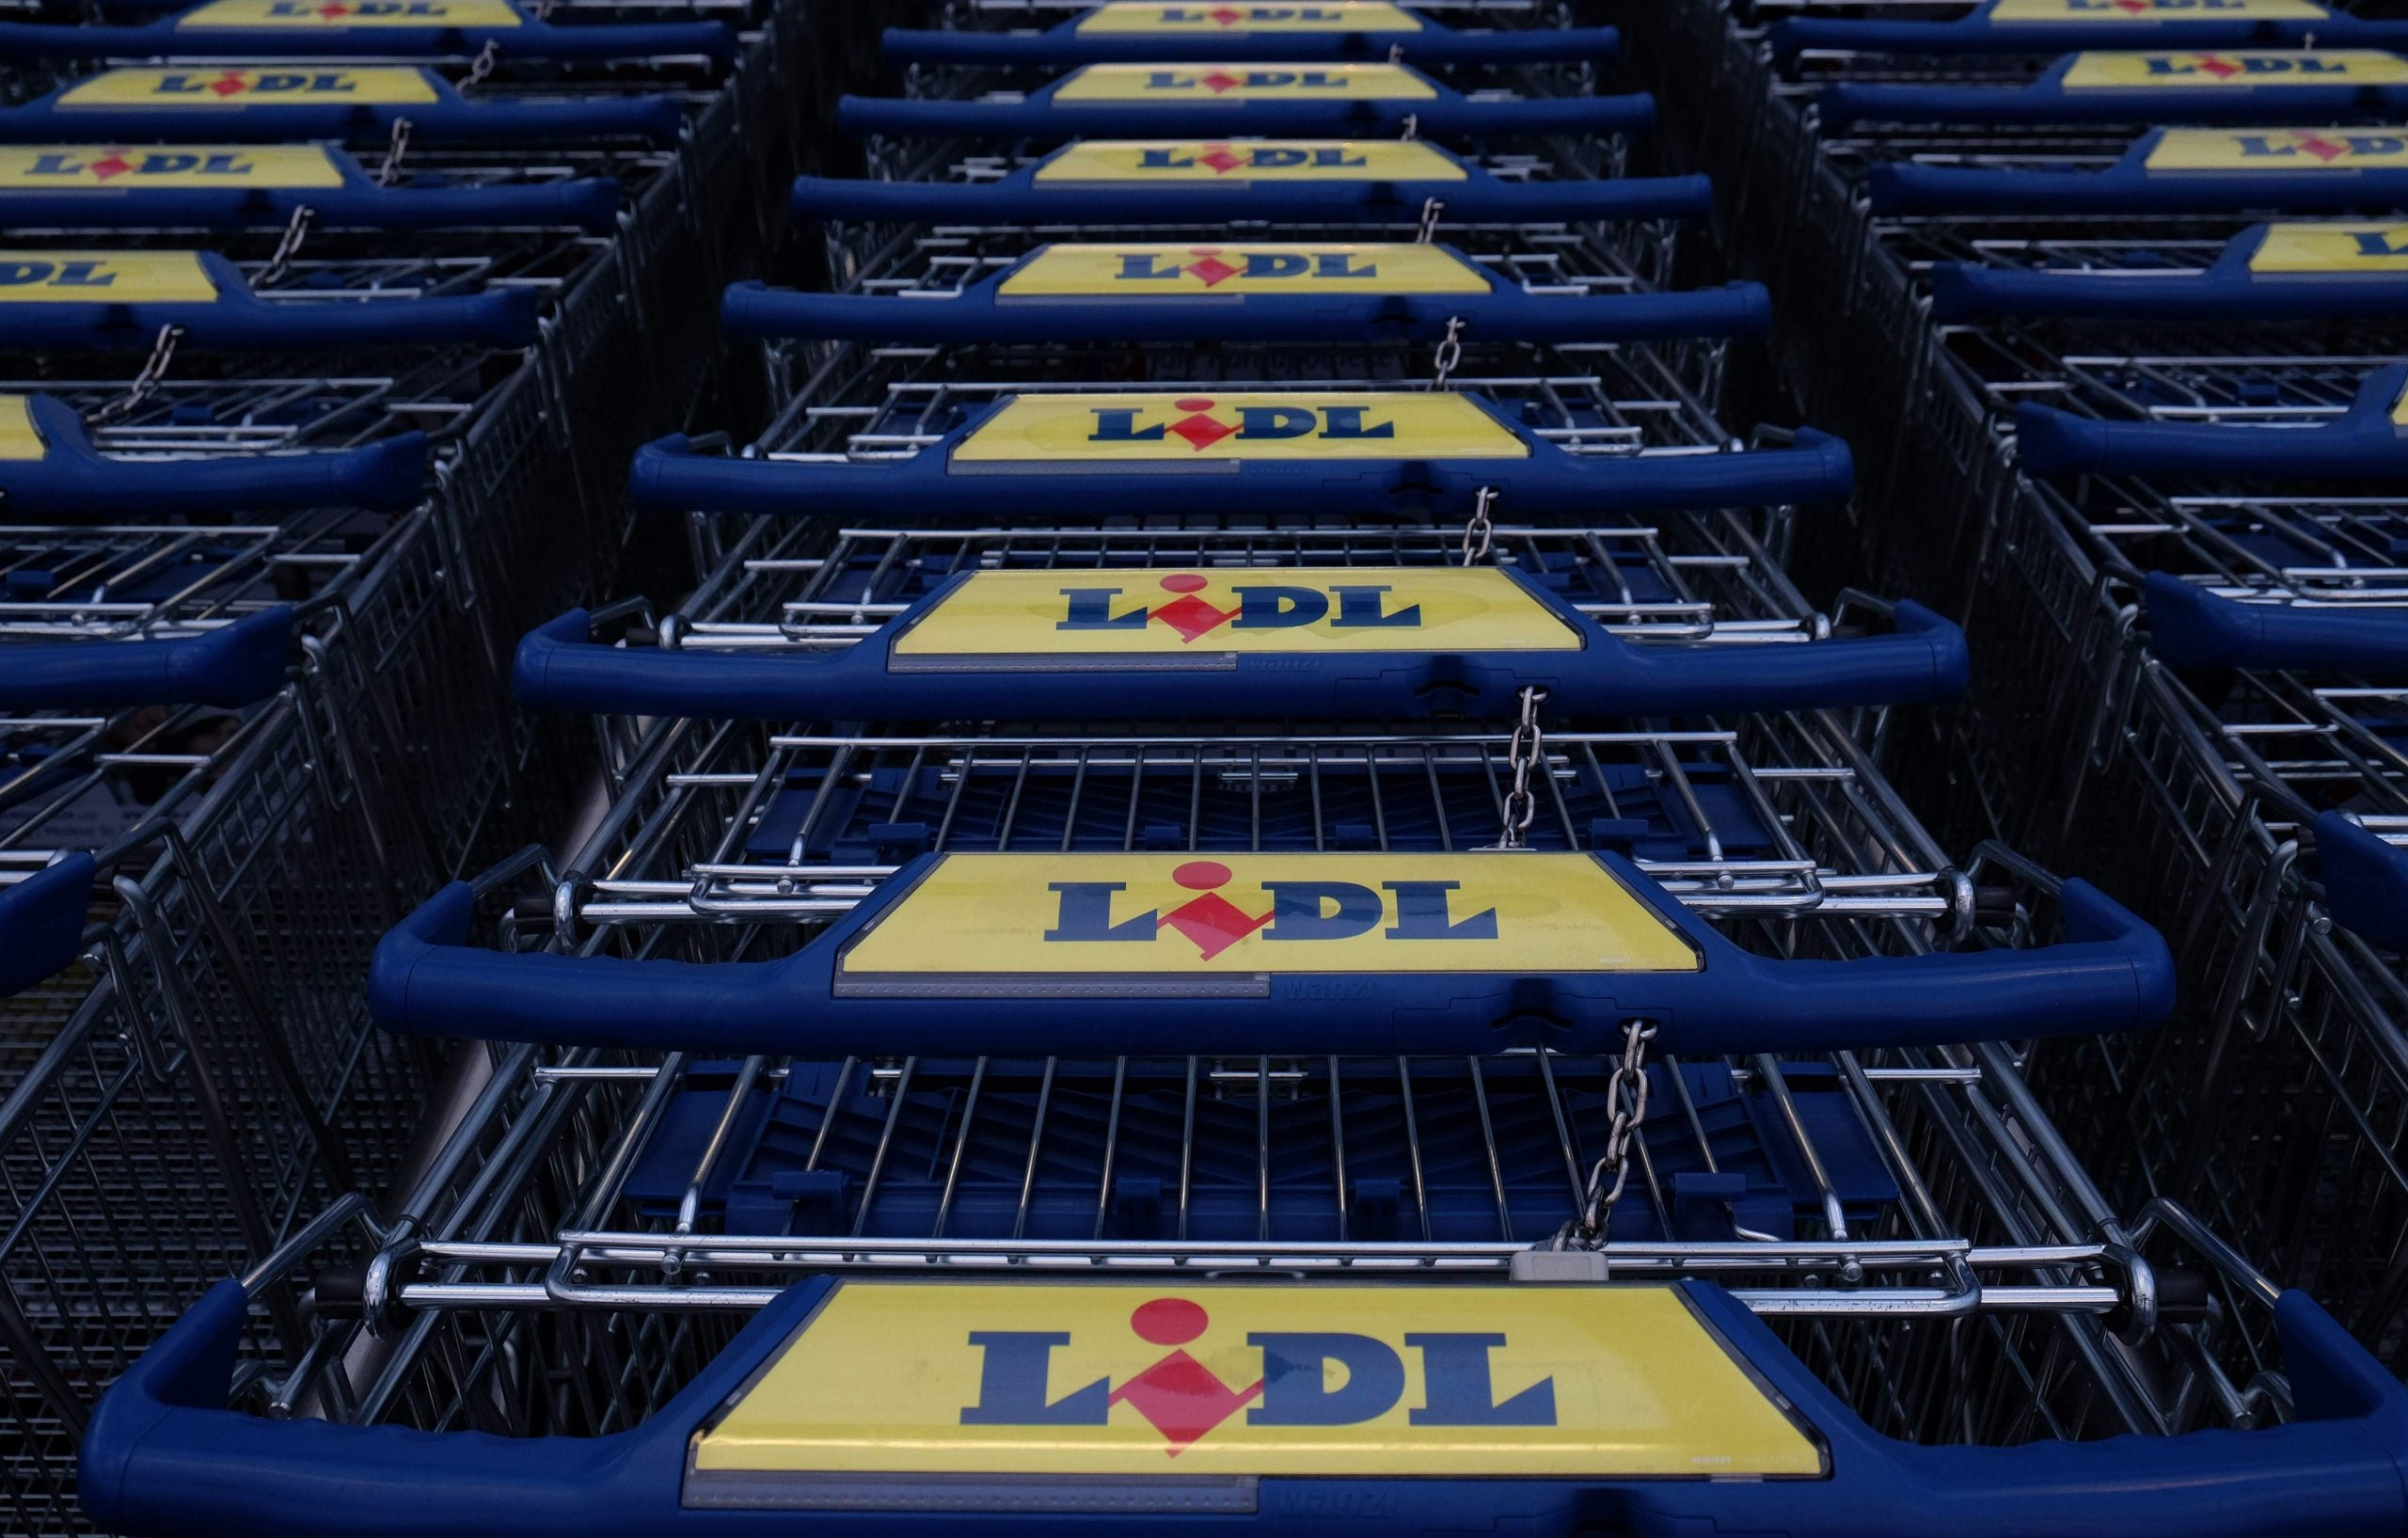 Lidl's move shows that even in low-margin sectors, higher pay is possible